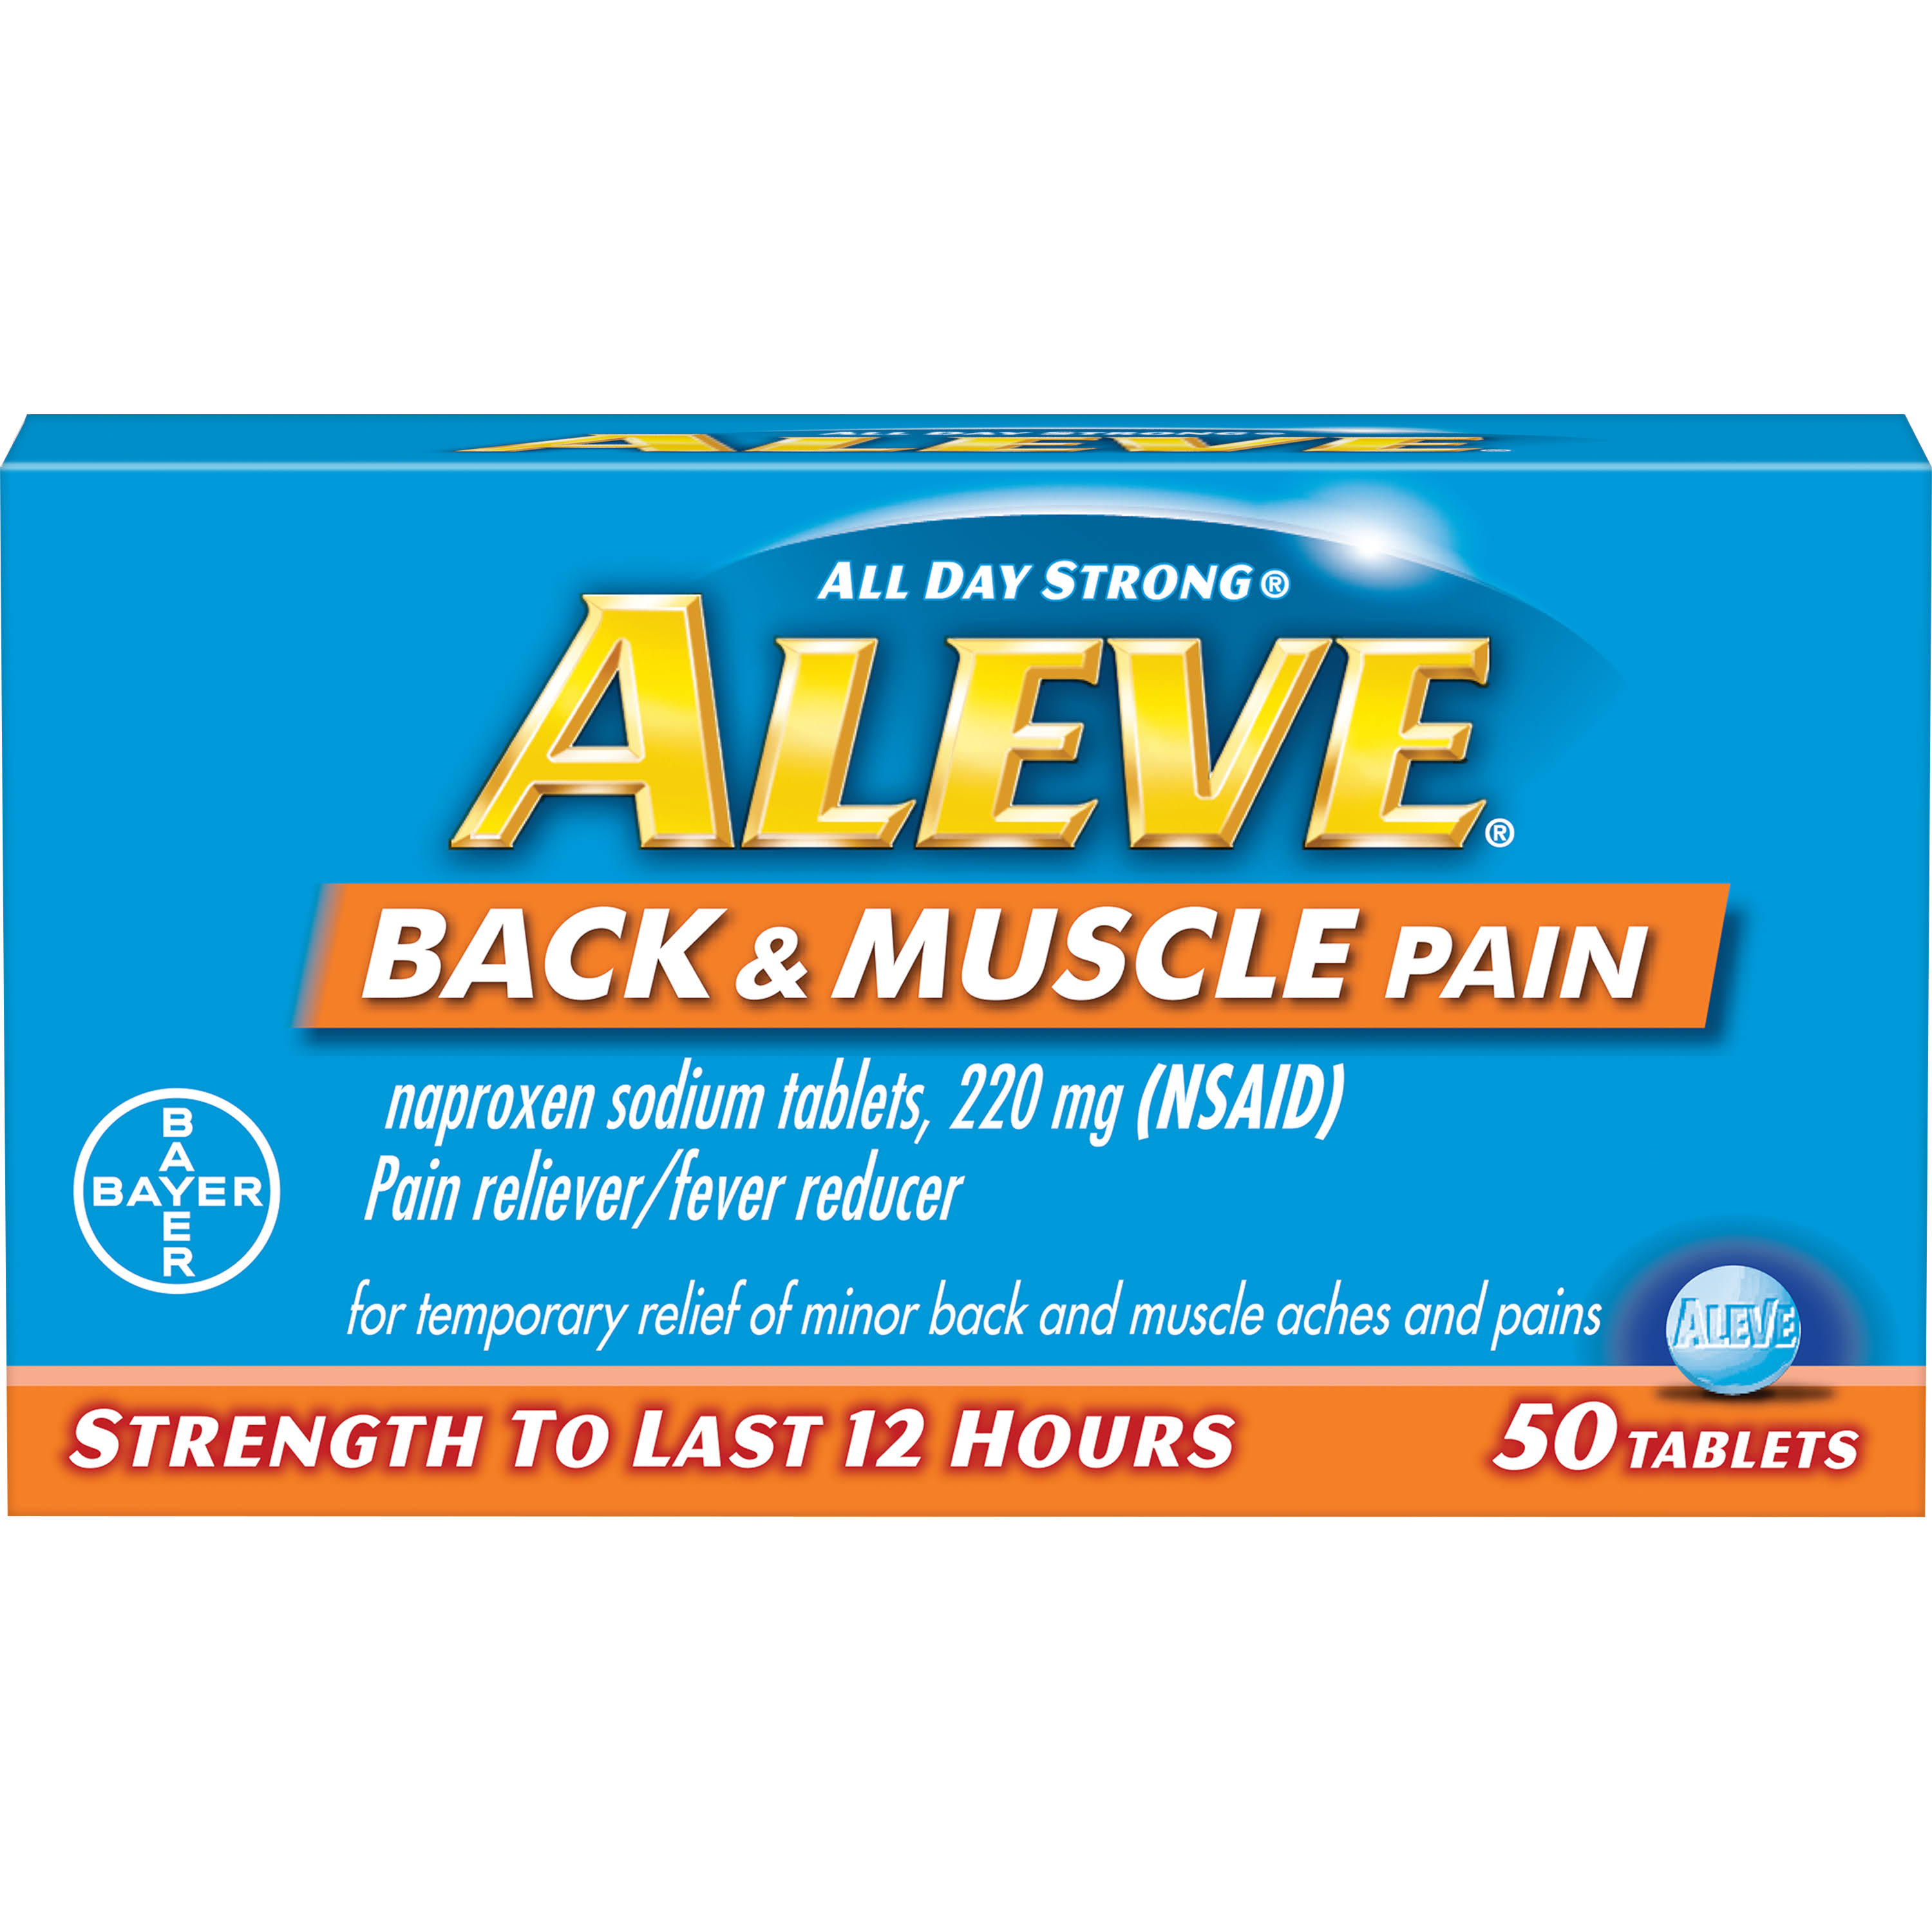 Bayer Aleve Back & Muscle Pain Tablets - 50ct